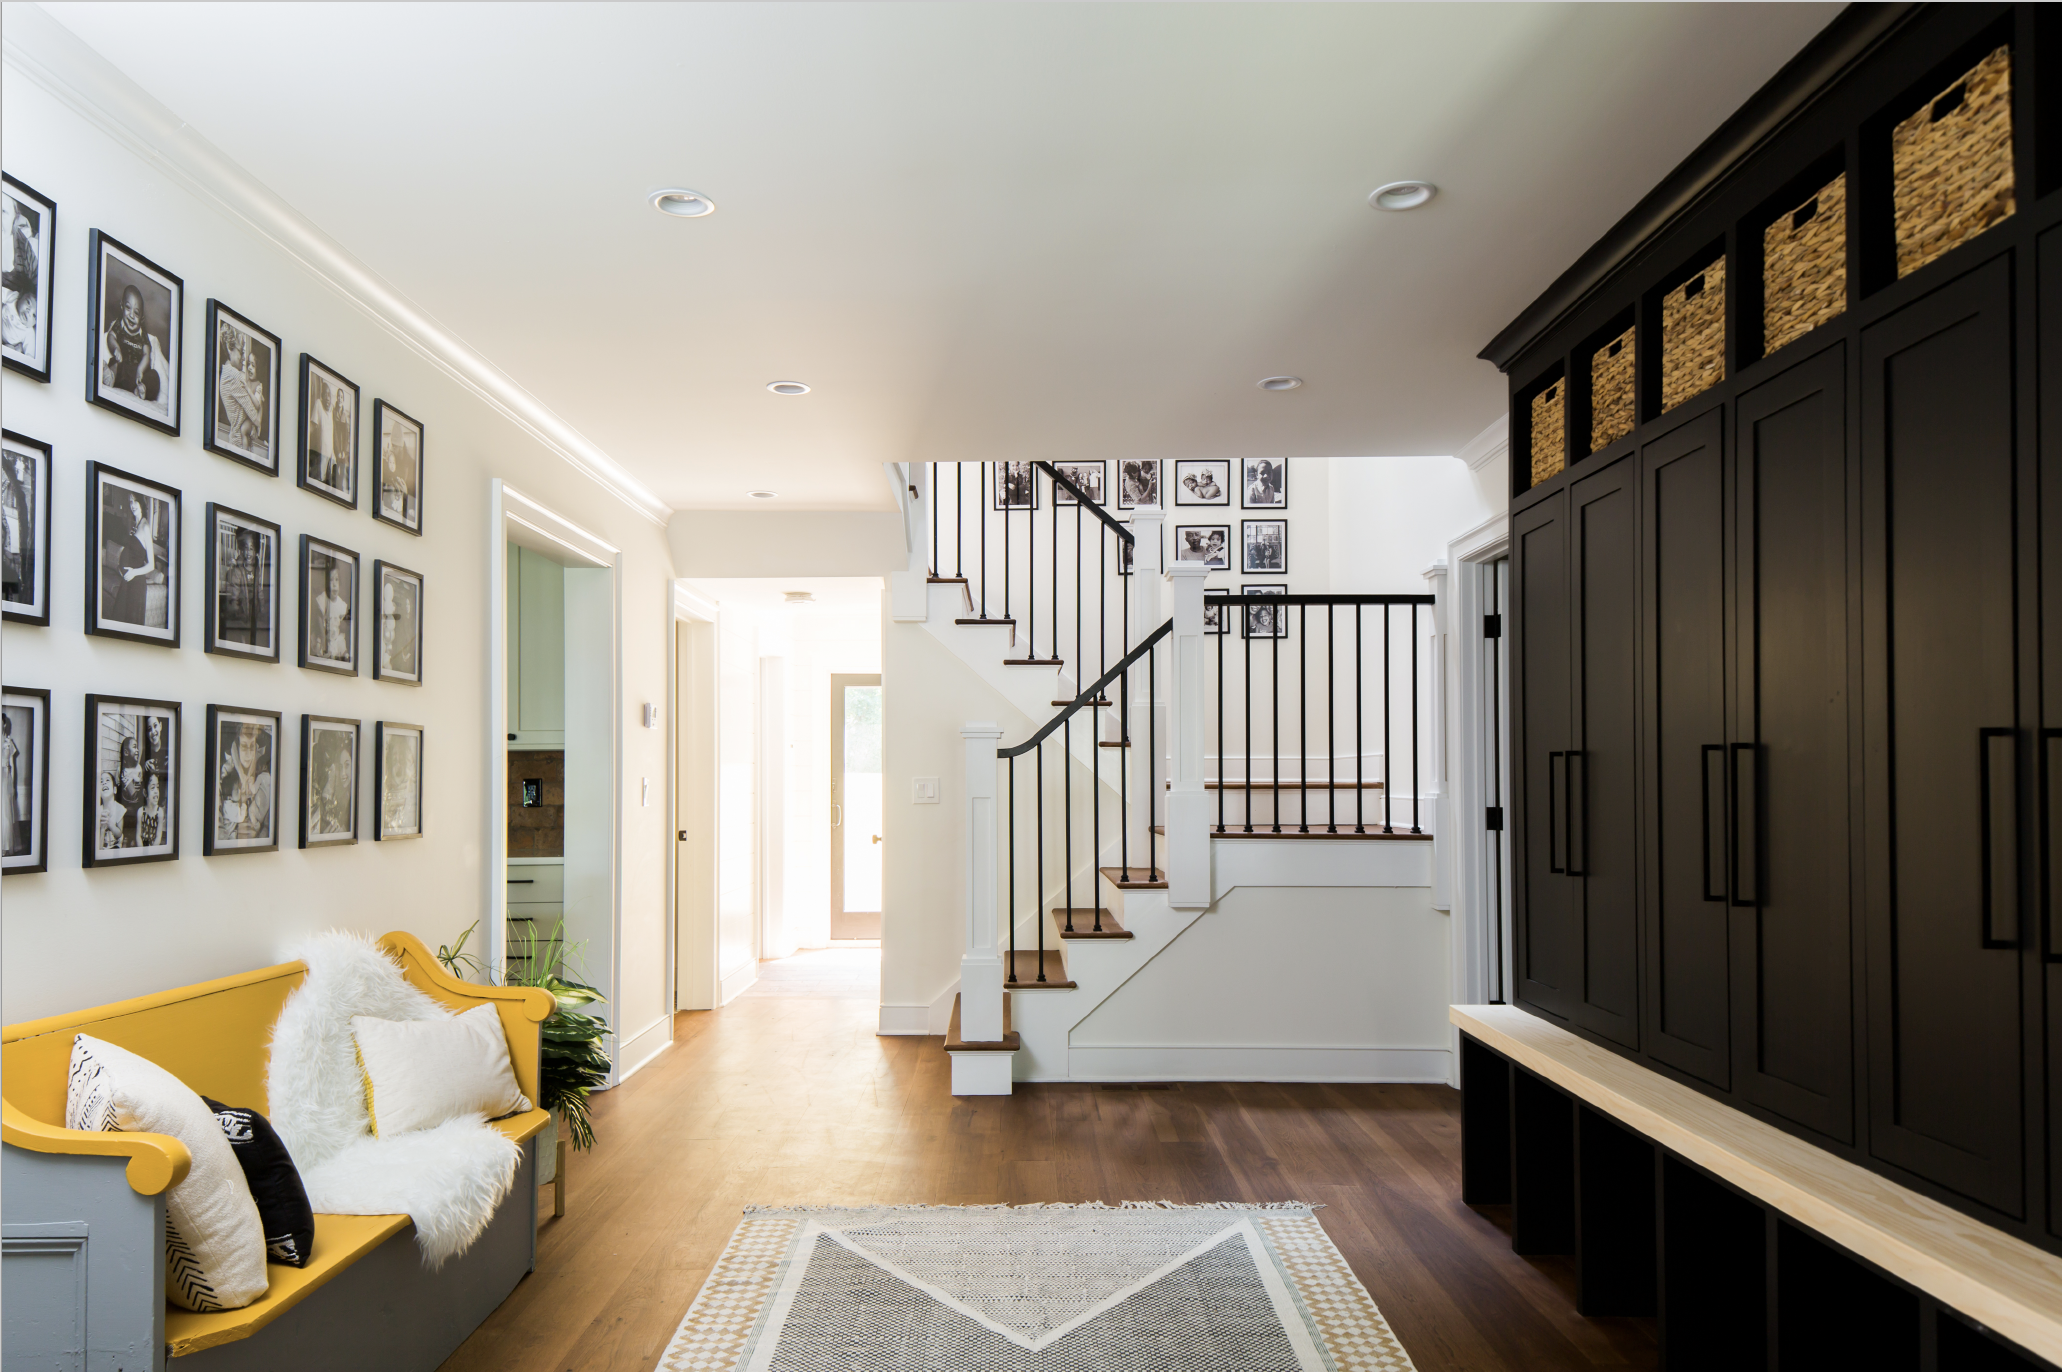 Kimberly, owner of KH Home Design and Furnishings, a Connecticut-based interior design copmany